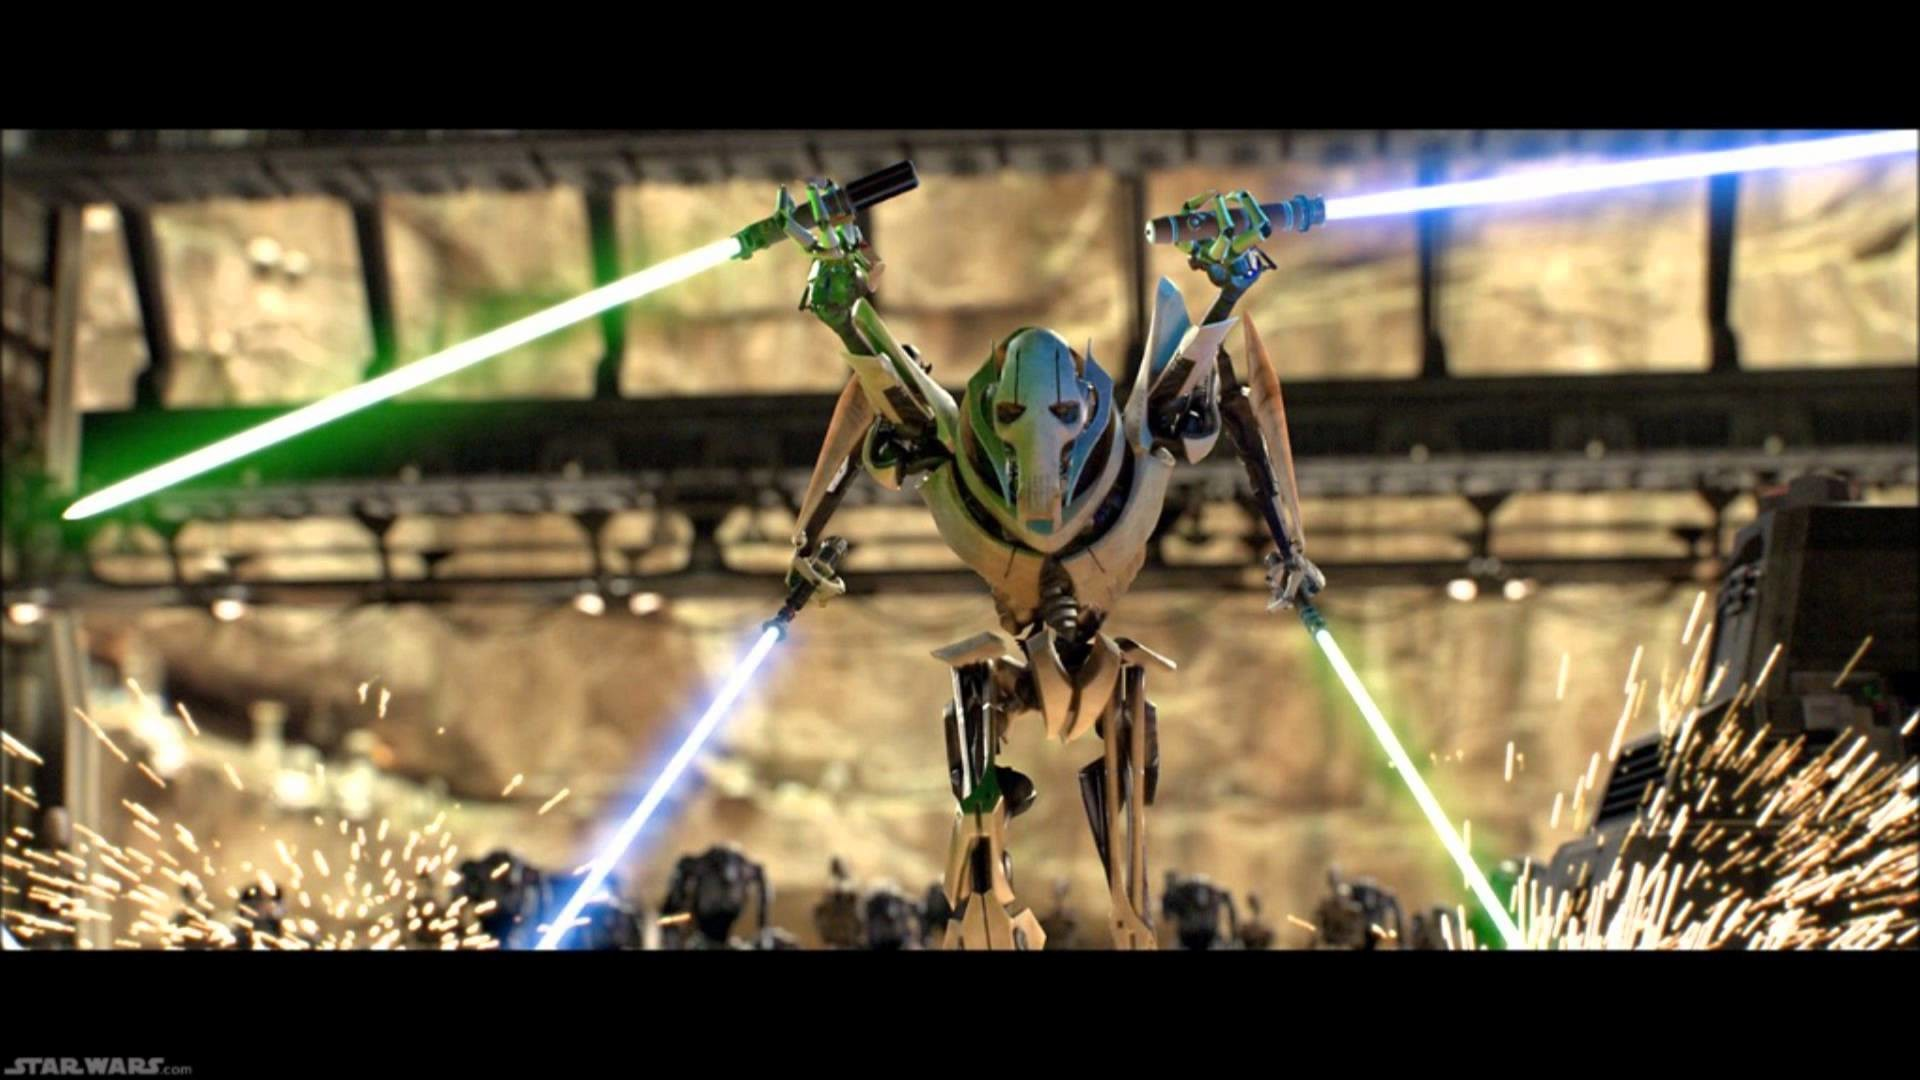 116 General Grievous Wallpaper Hd